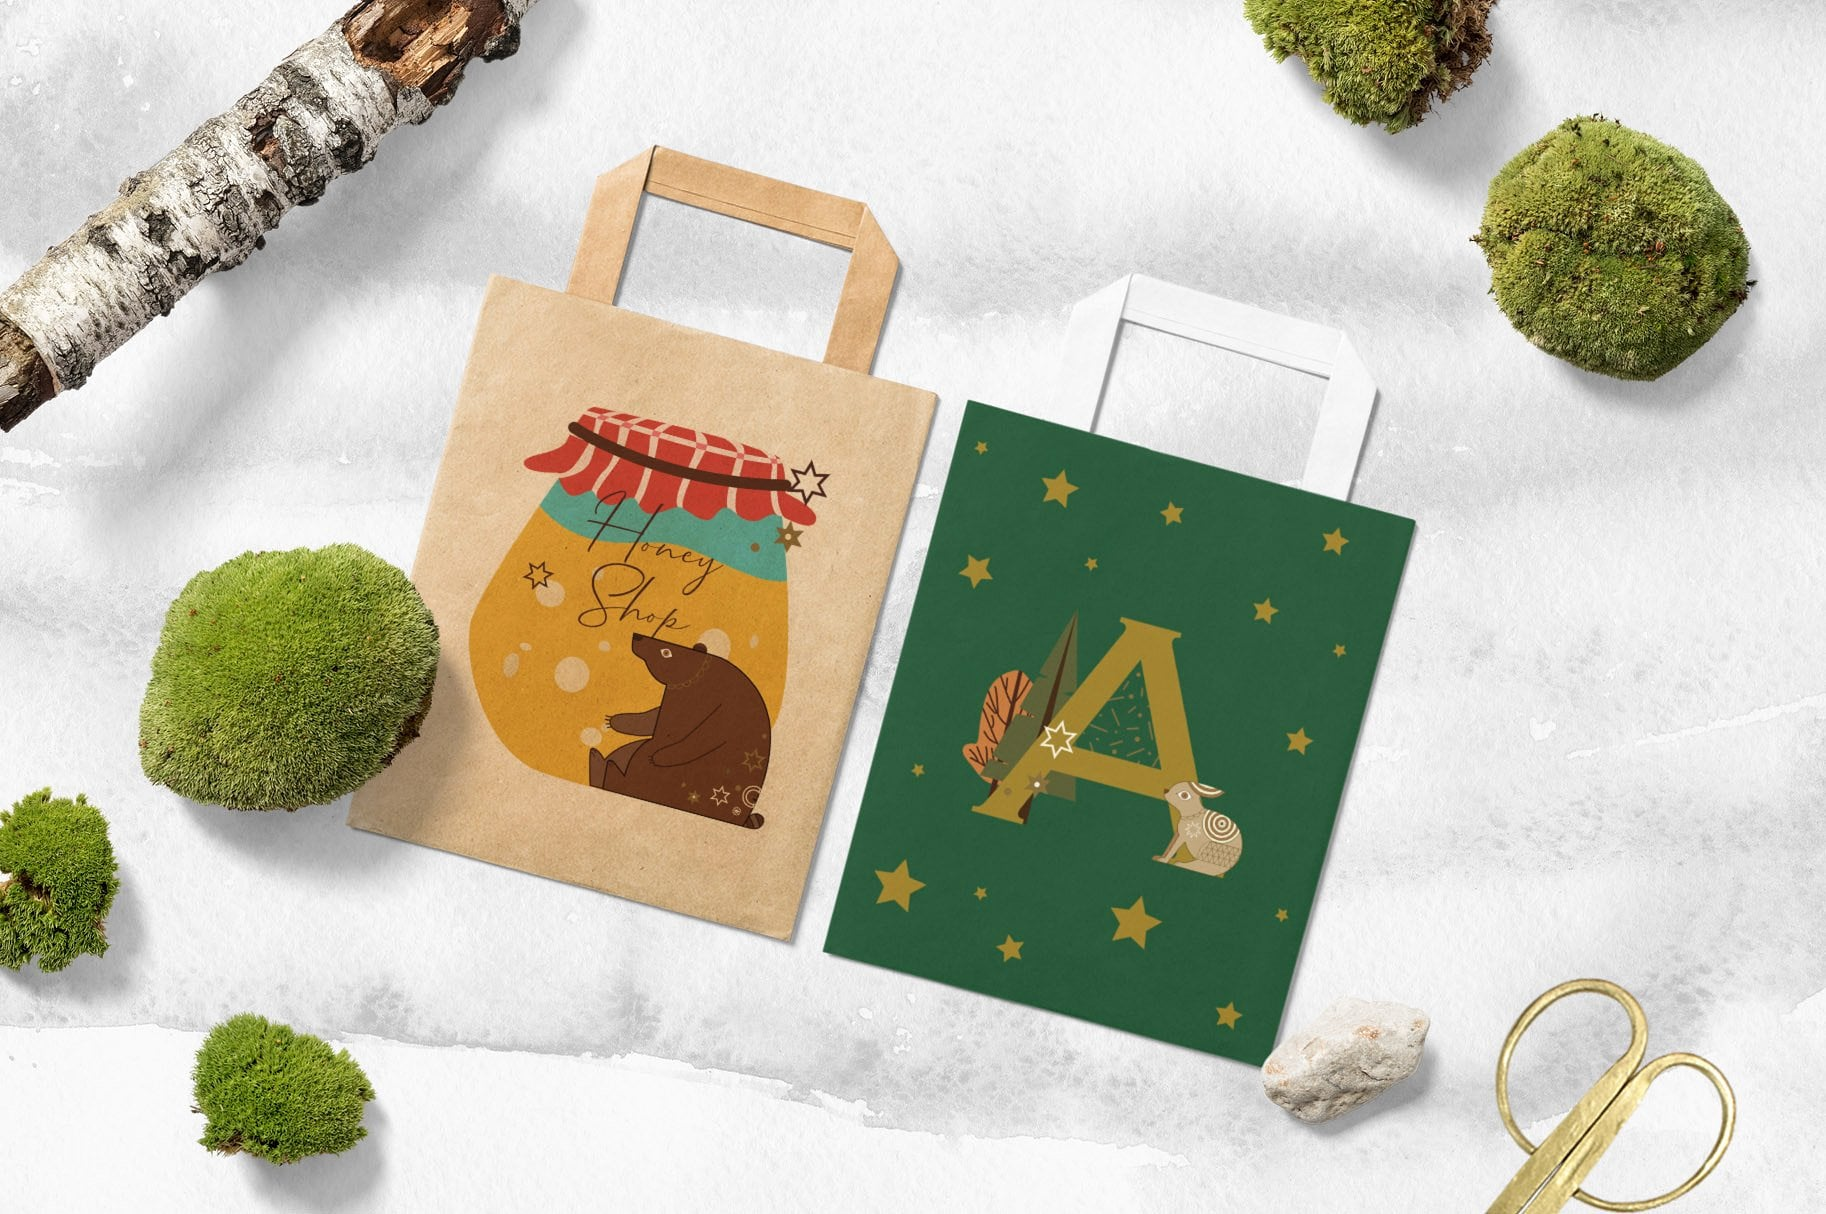 These illustrations look beautiful on eco bags and other surfaces.